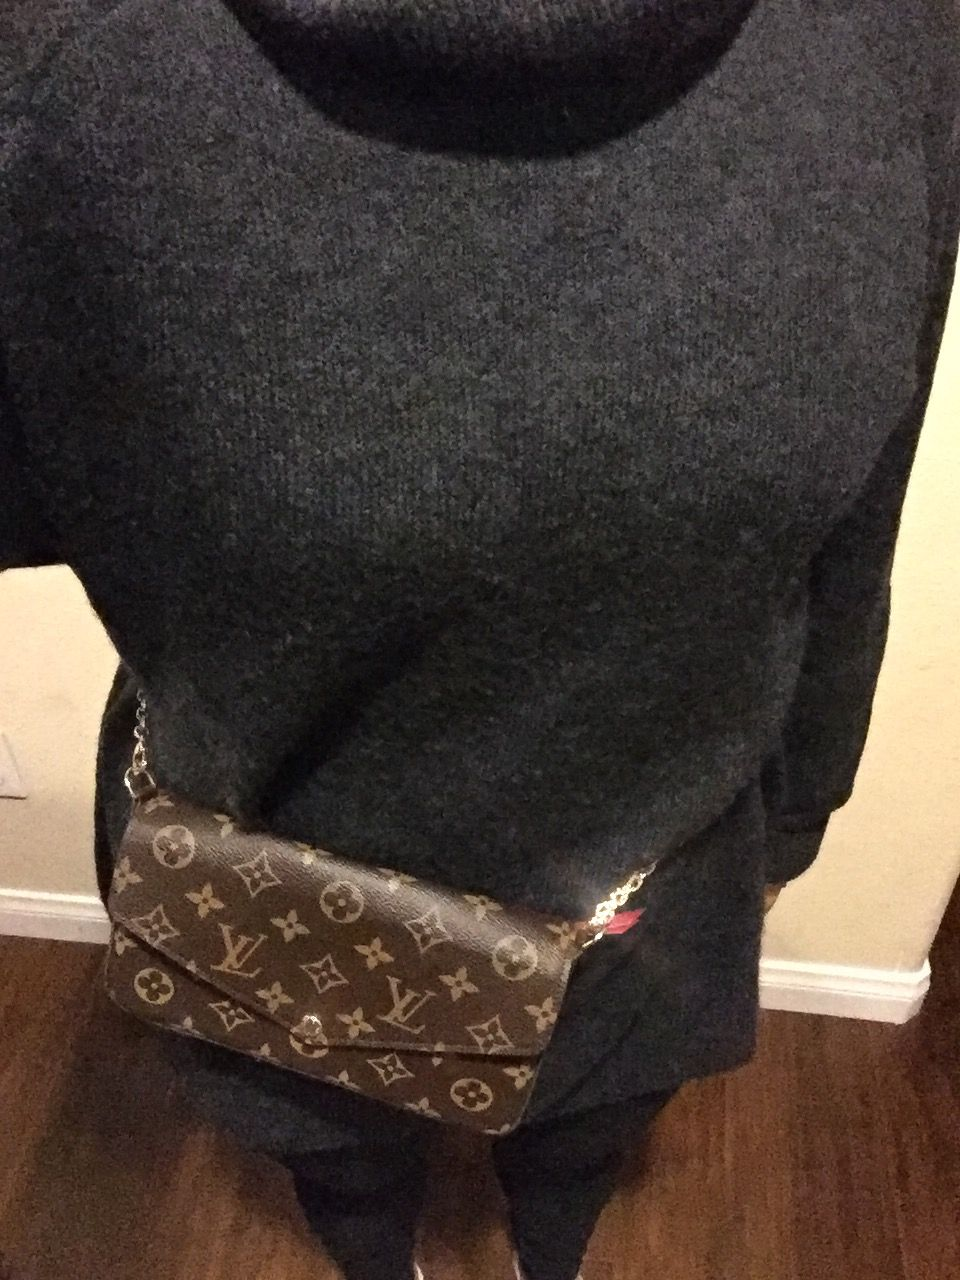 0dcb7cefb178 louis vuitton pochette felicie belt bag style